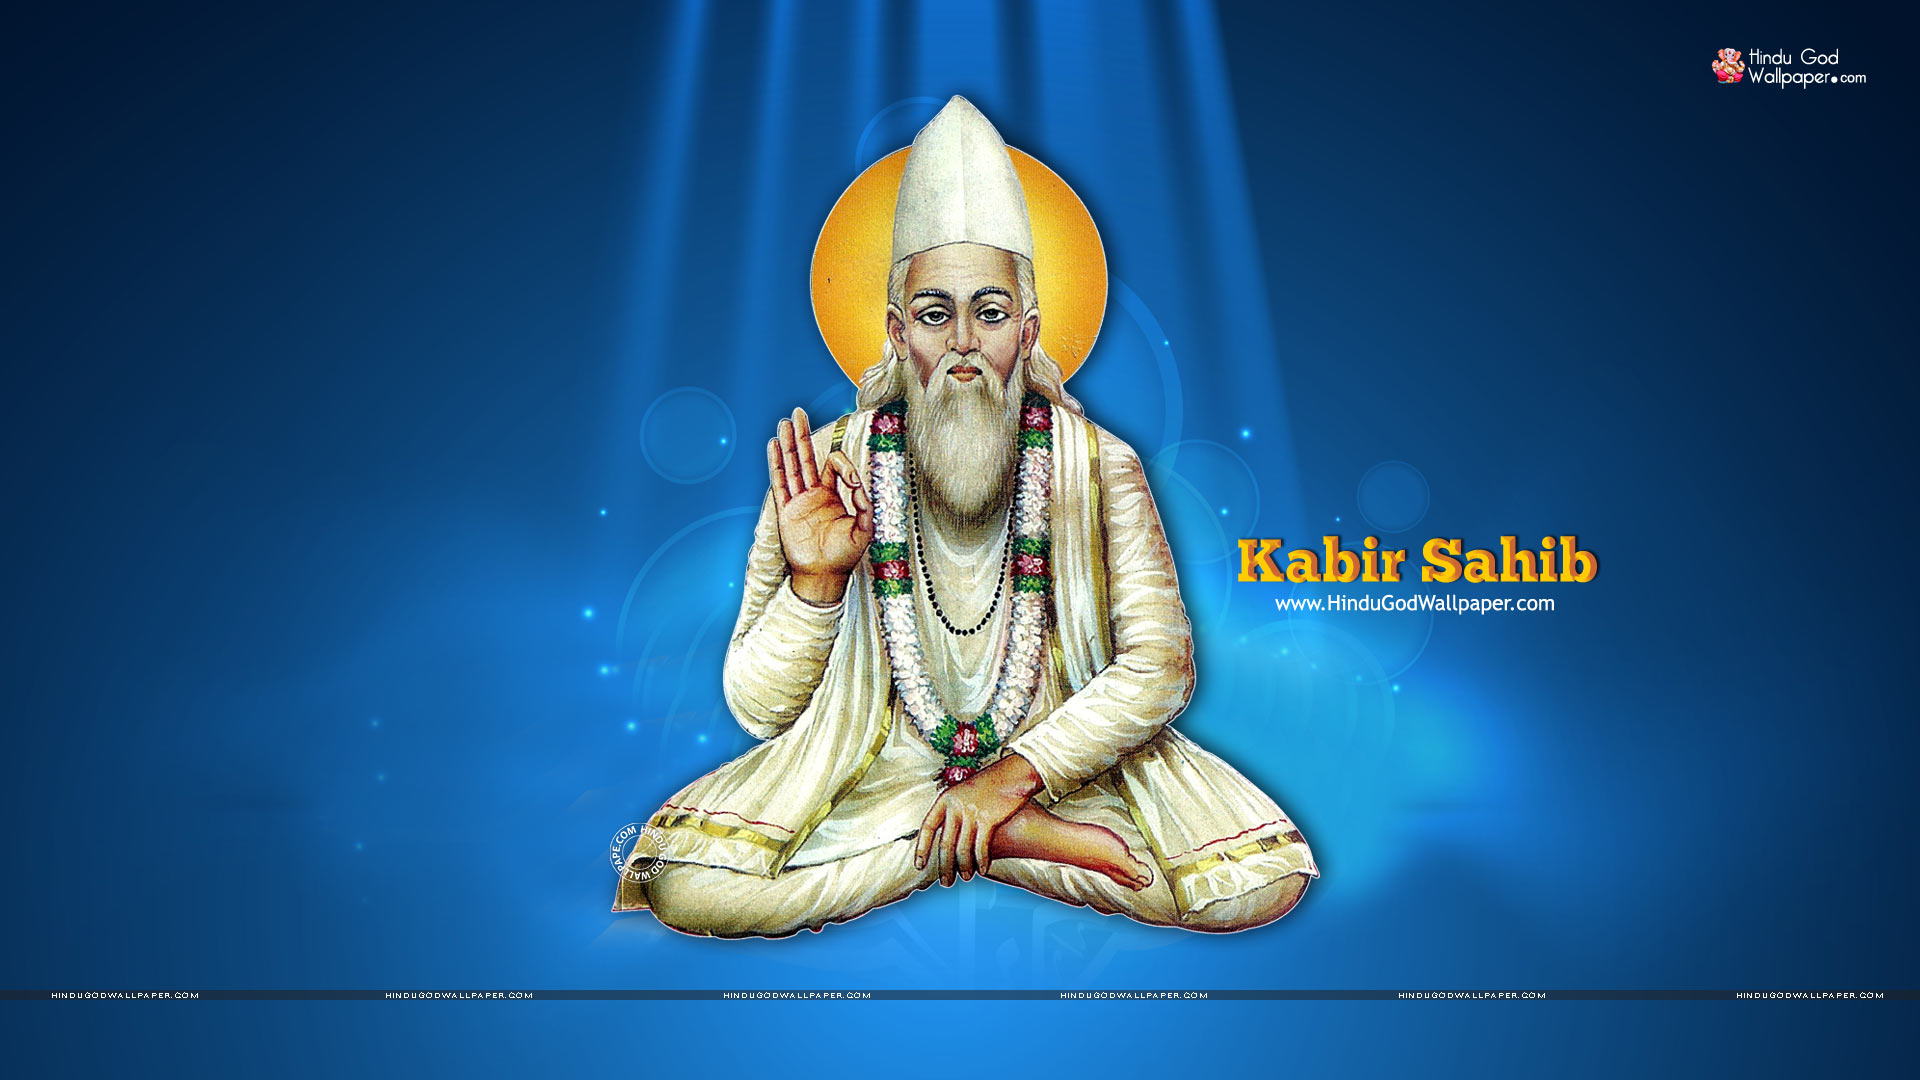 Sant Kabir Das Wallpaper HD